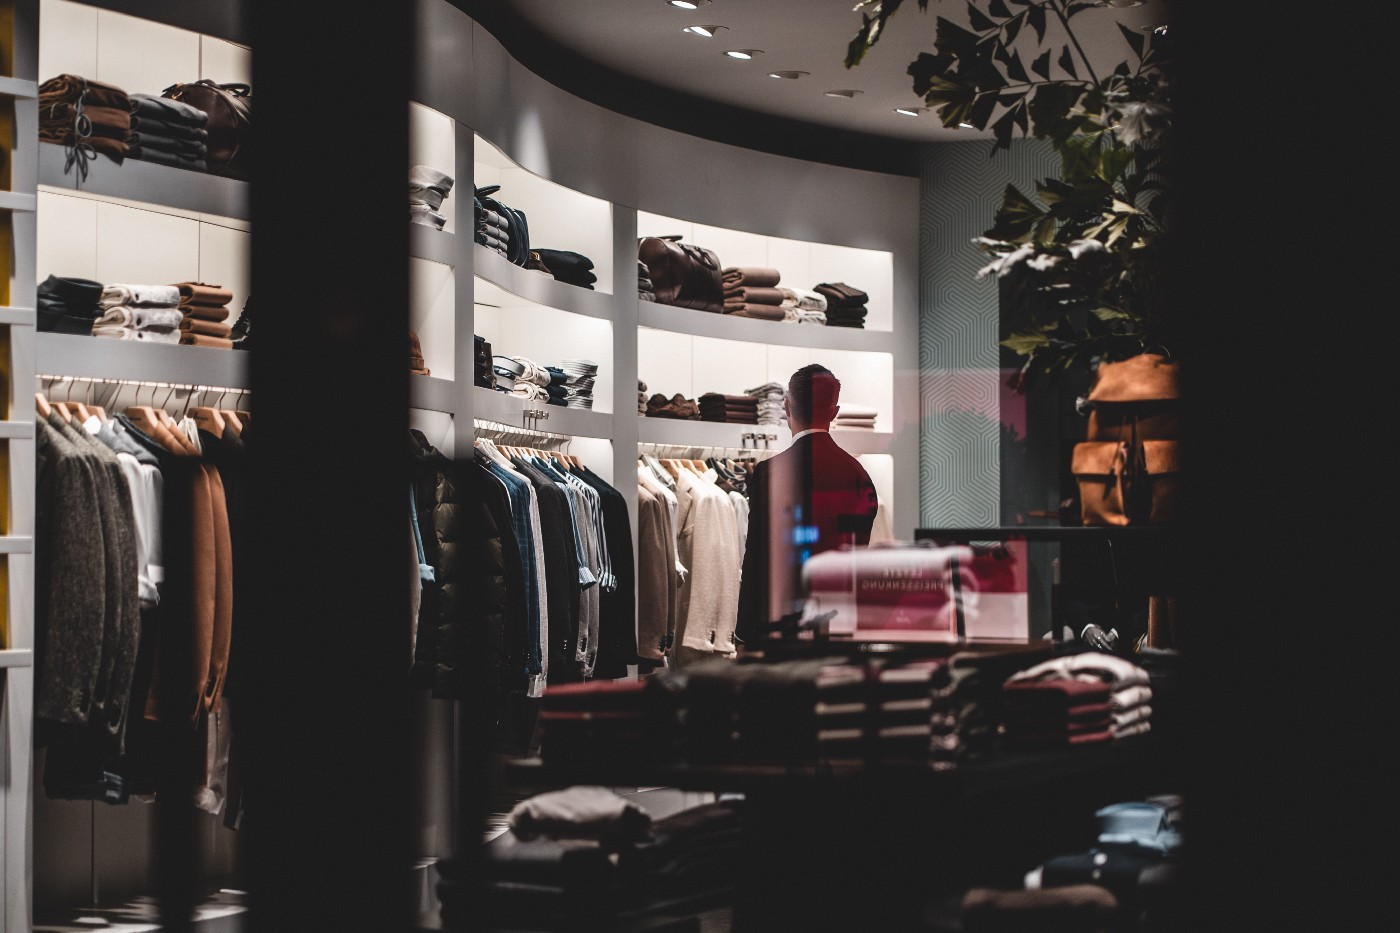 Shopping needs to offer a clearer path to assortment undertstanding and selection.